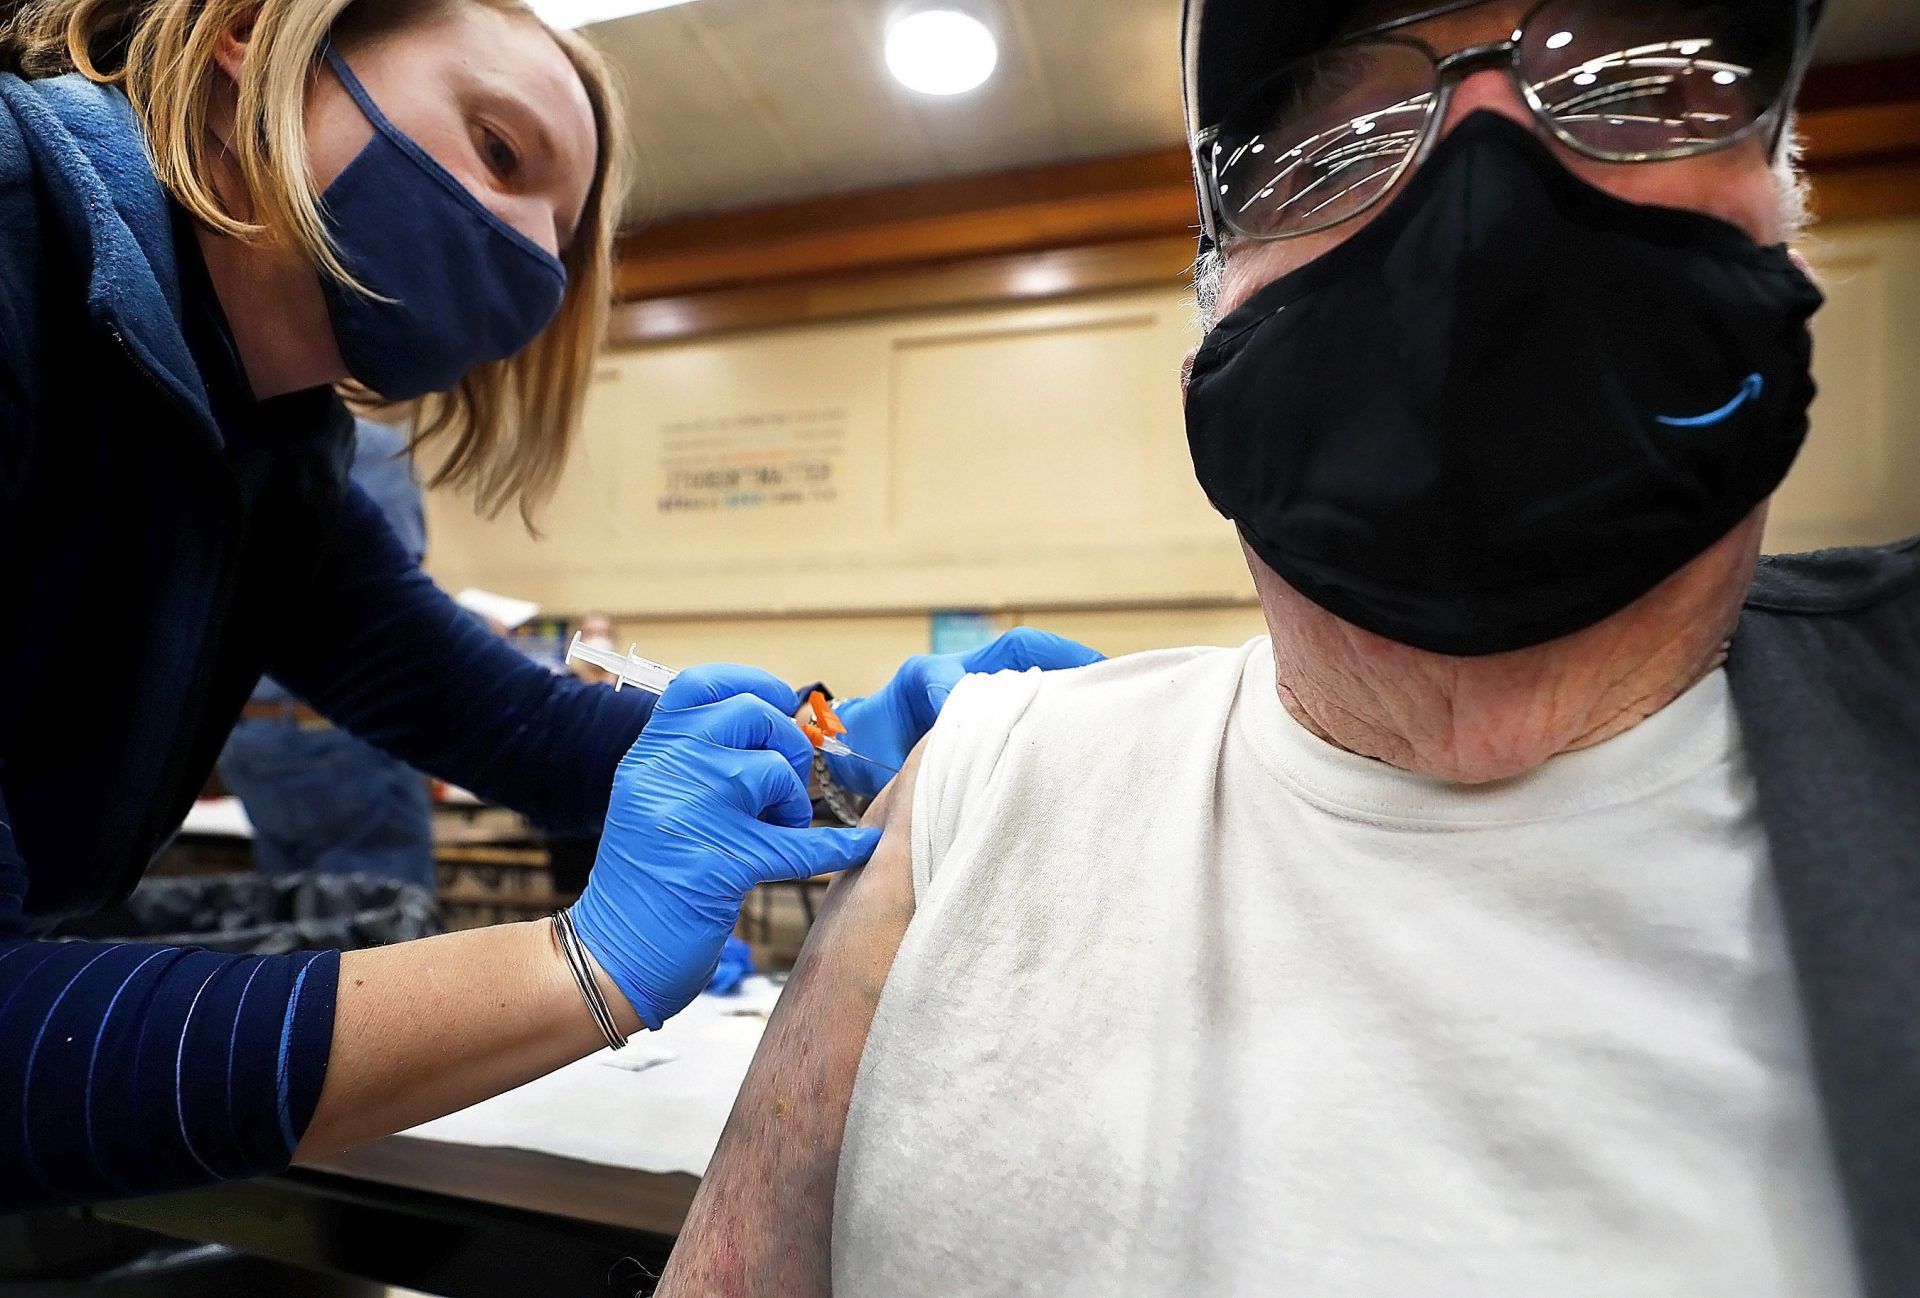 Robert Keen, 84, of Forksville, thought he would have to wait until April to get the vaccine despite being eligible, but received it during a community clinic last month at the Sullivan County Elementary School in Laporte Borough.